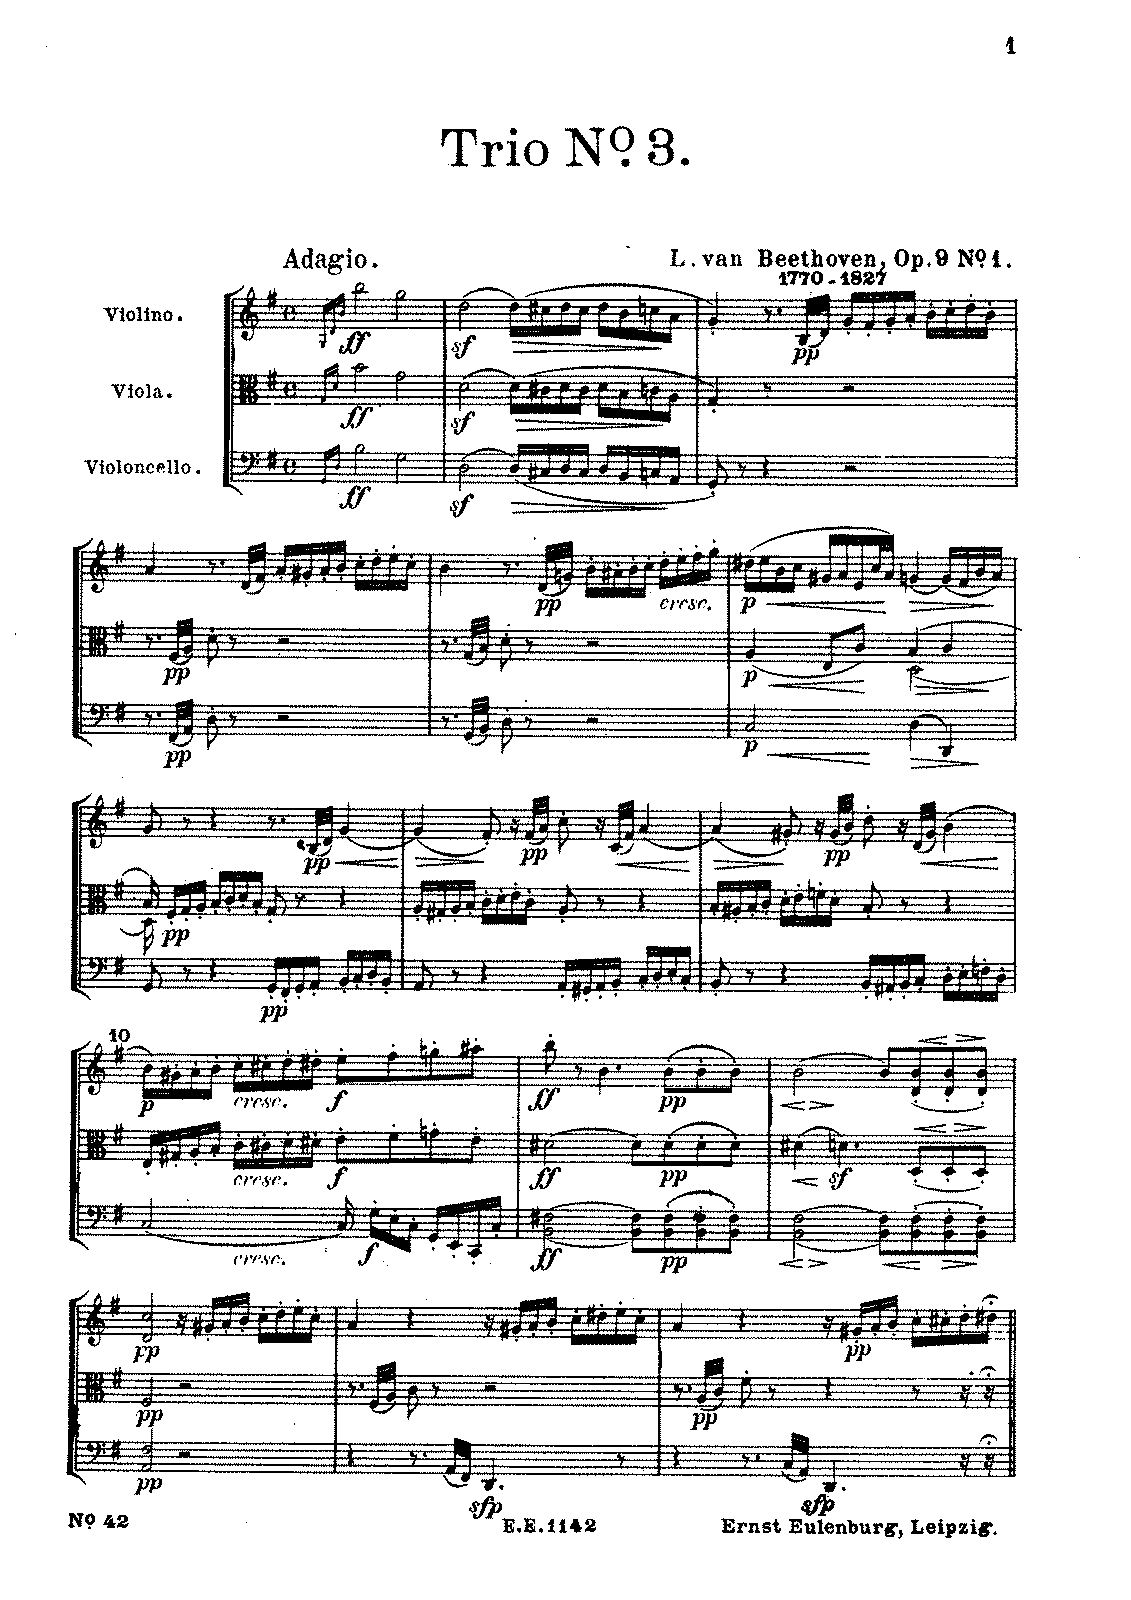 Beethoven String Trio Op.9 No.1 in G.pdf